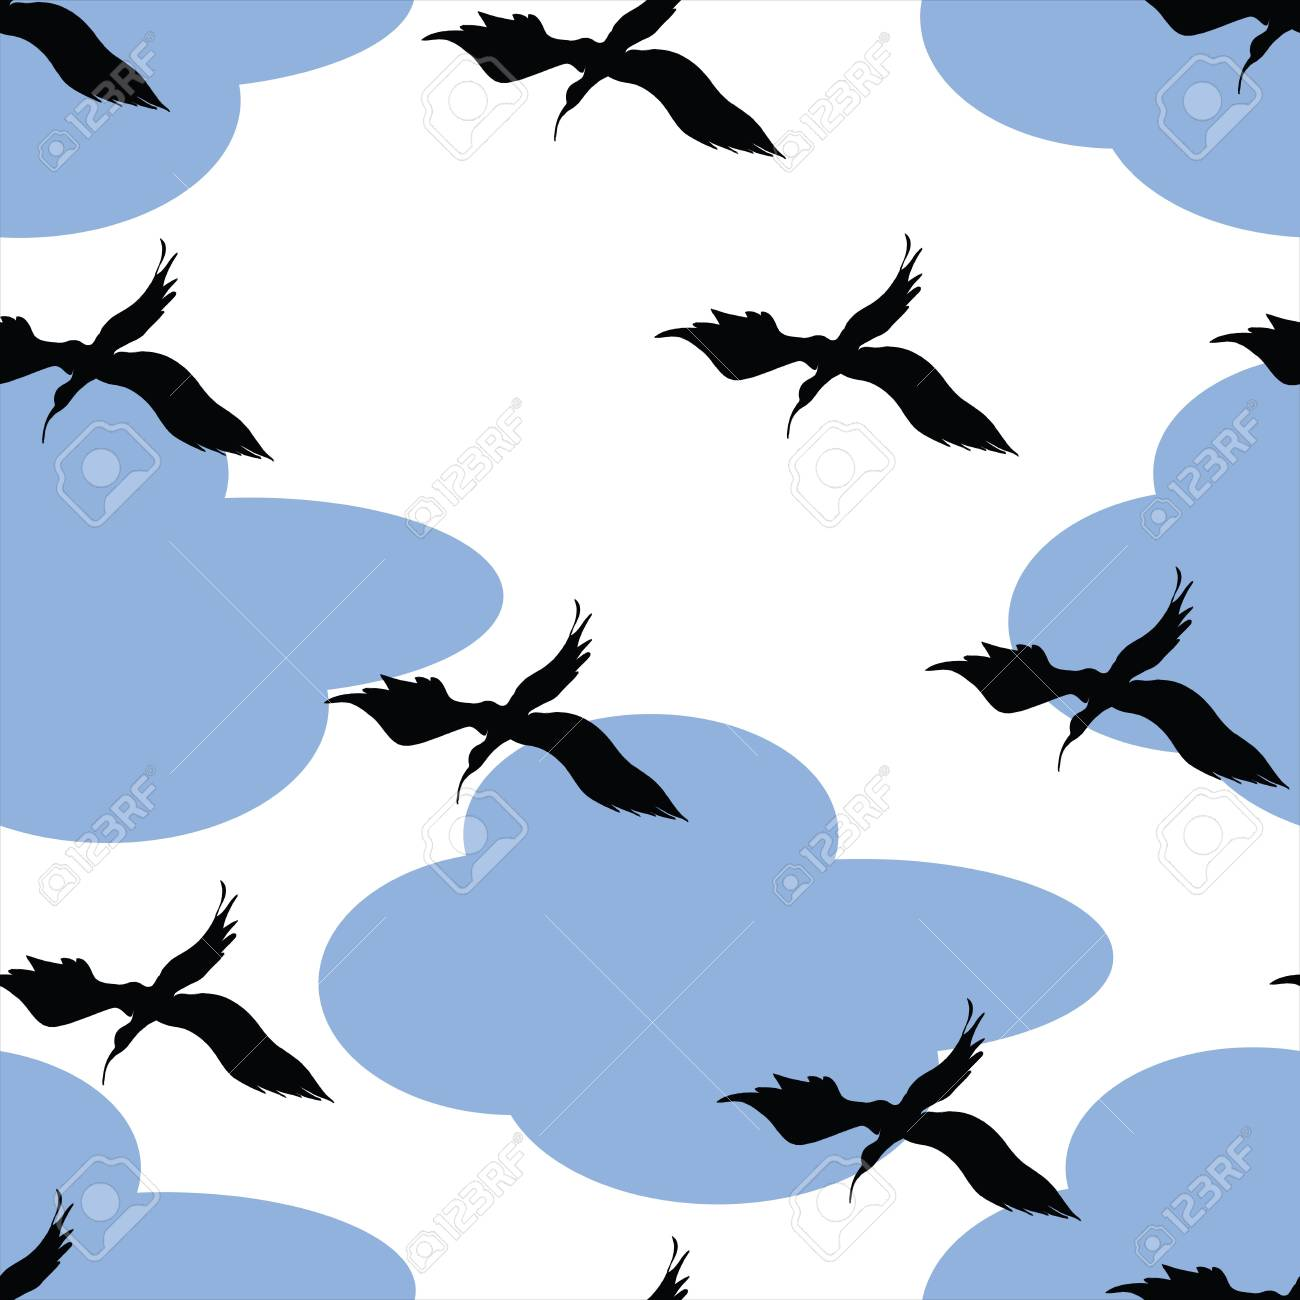 Birds and clouds pattern, easy to use, grouped and isolated objects for duplicate print Stock Photo - 6186952